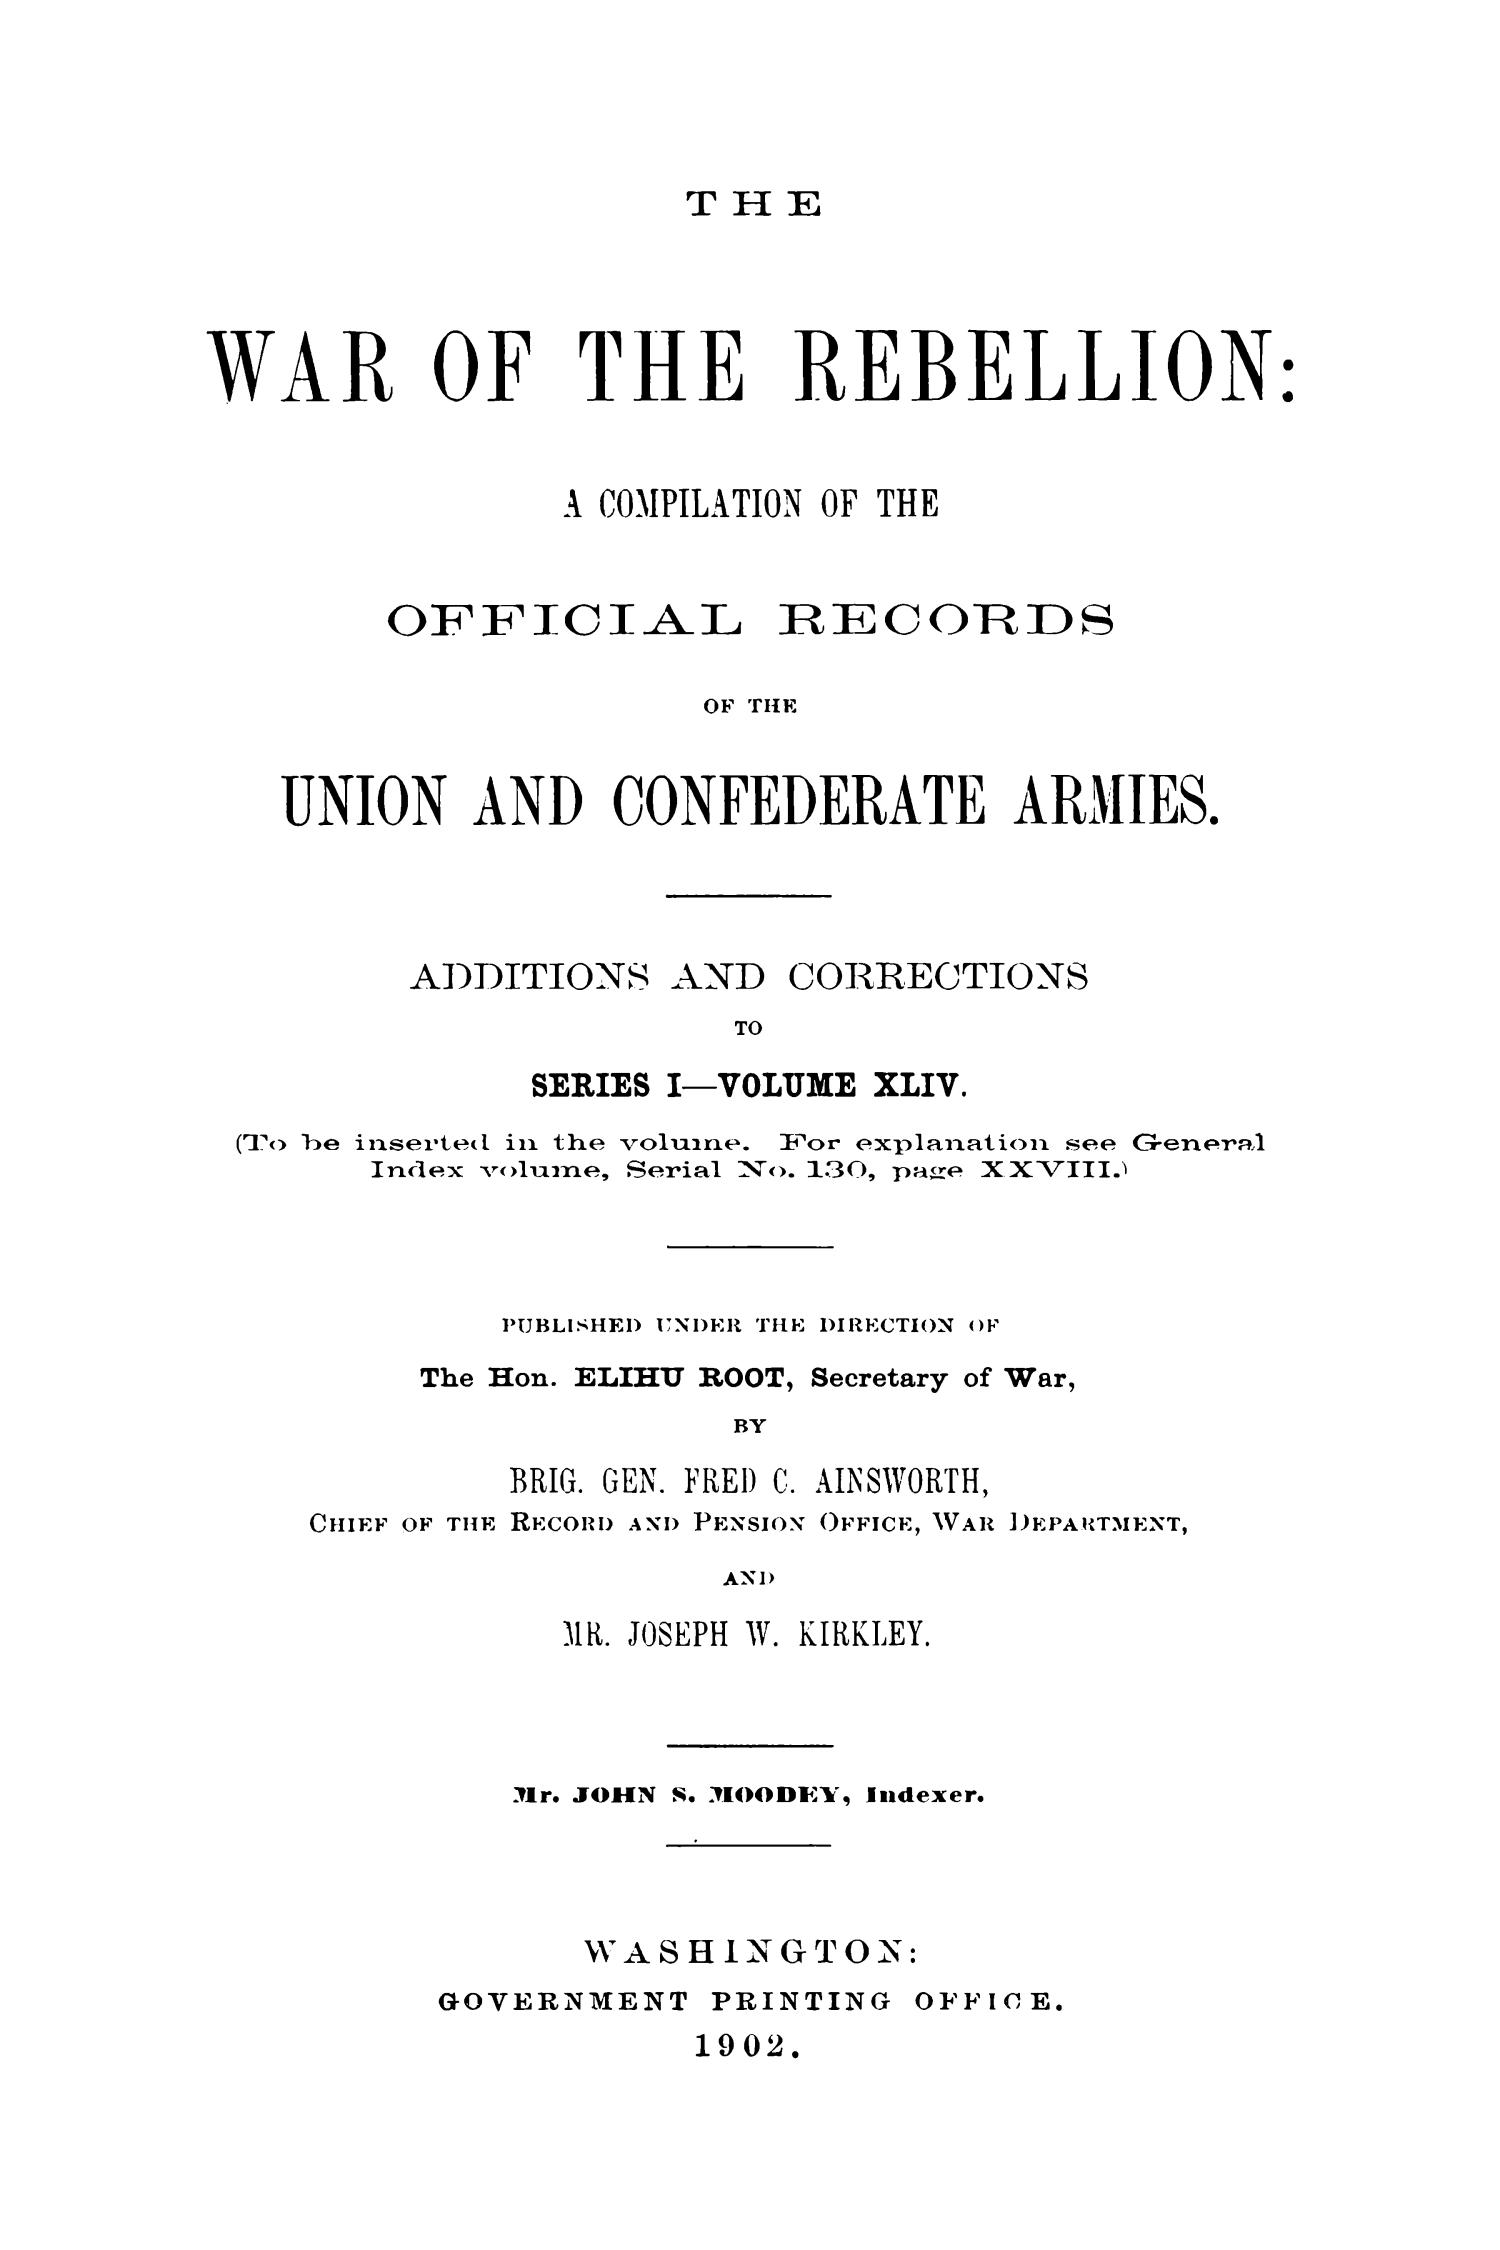 The War of the Rebellion: A Compilation of the Official Records of the Union And Confederate Armies. Additions and Corrections to Series 1, Volume 44.                                                                                                      1